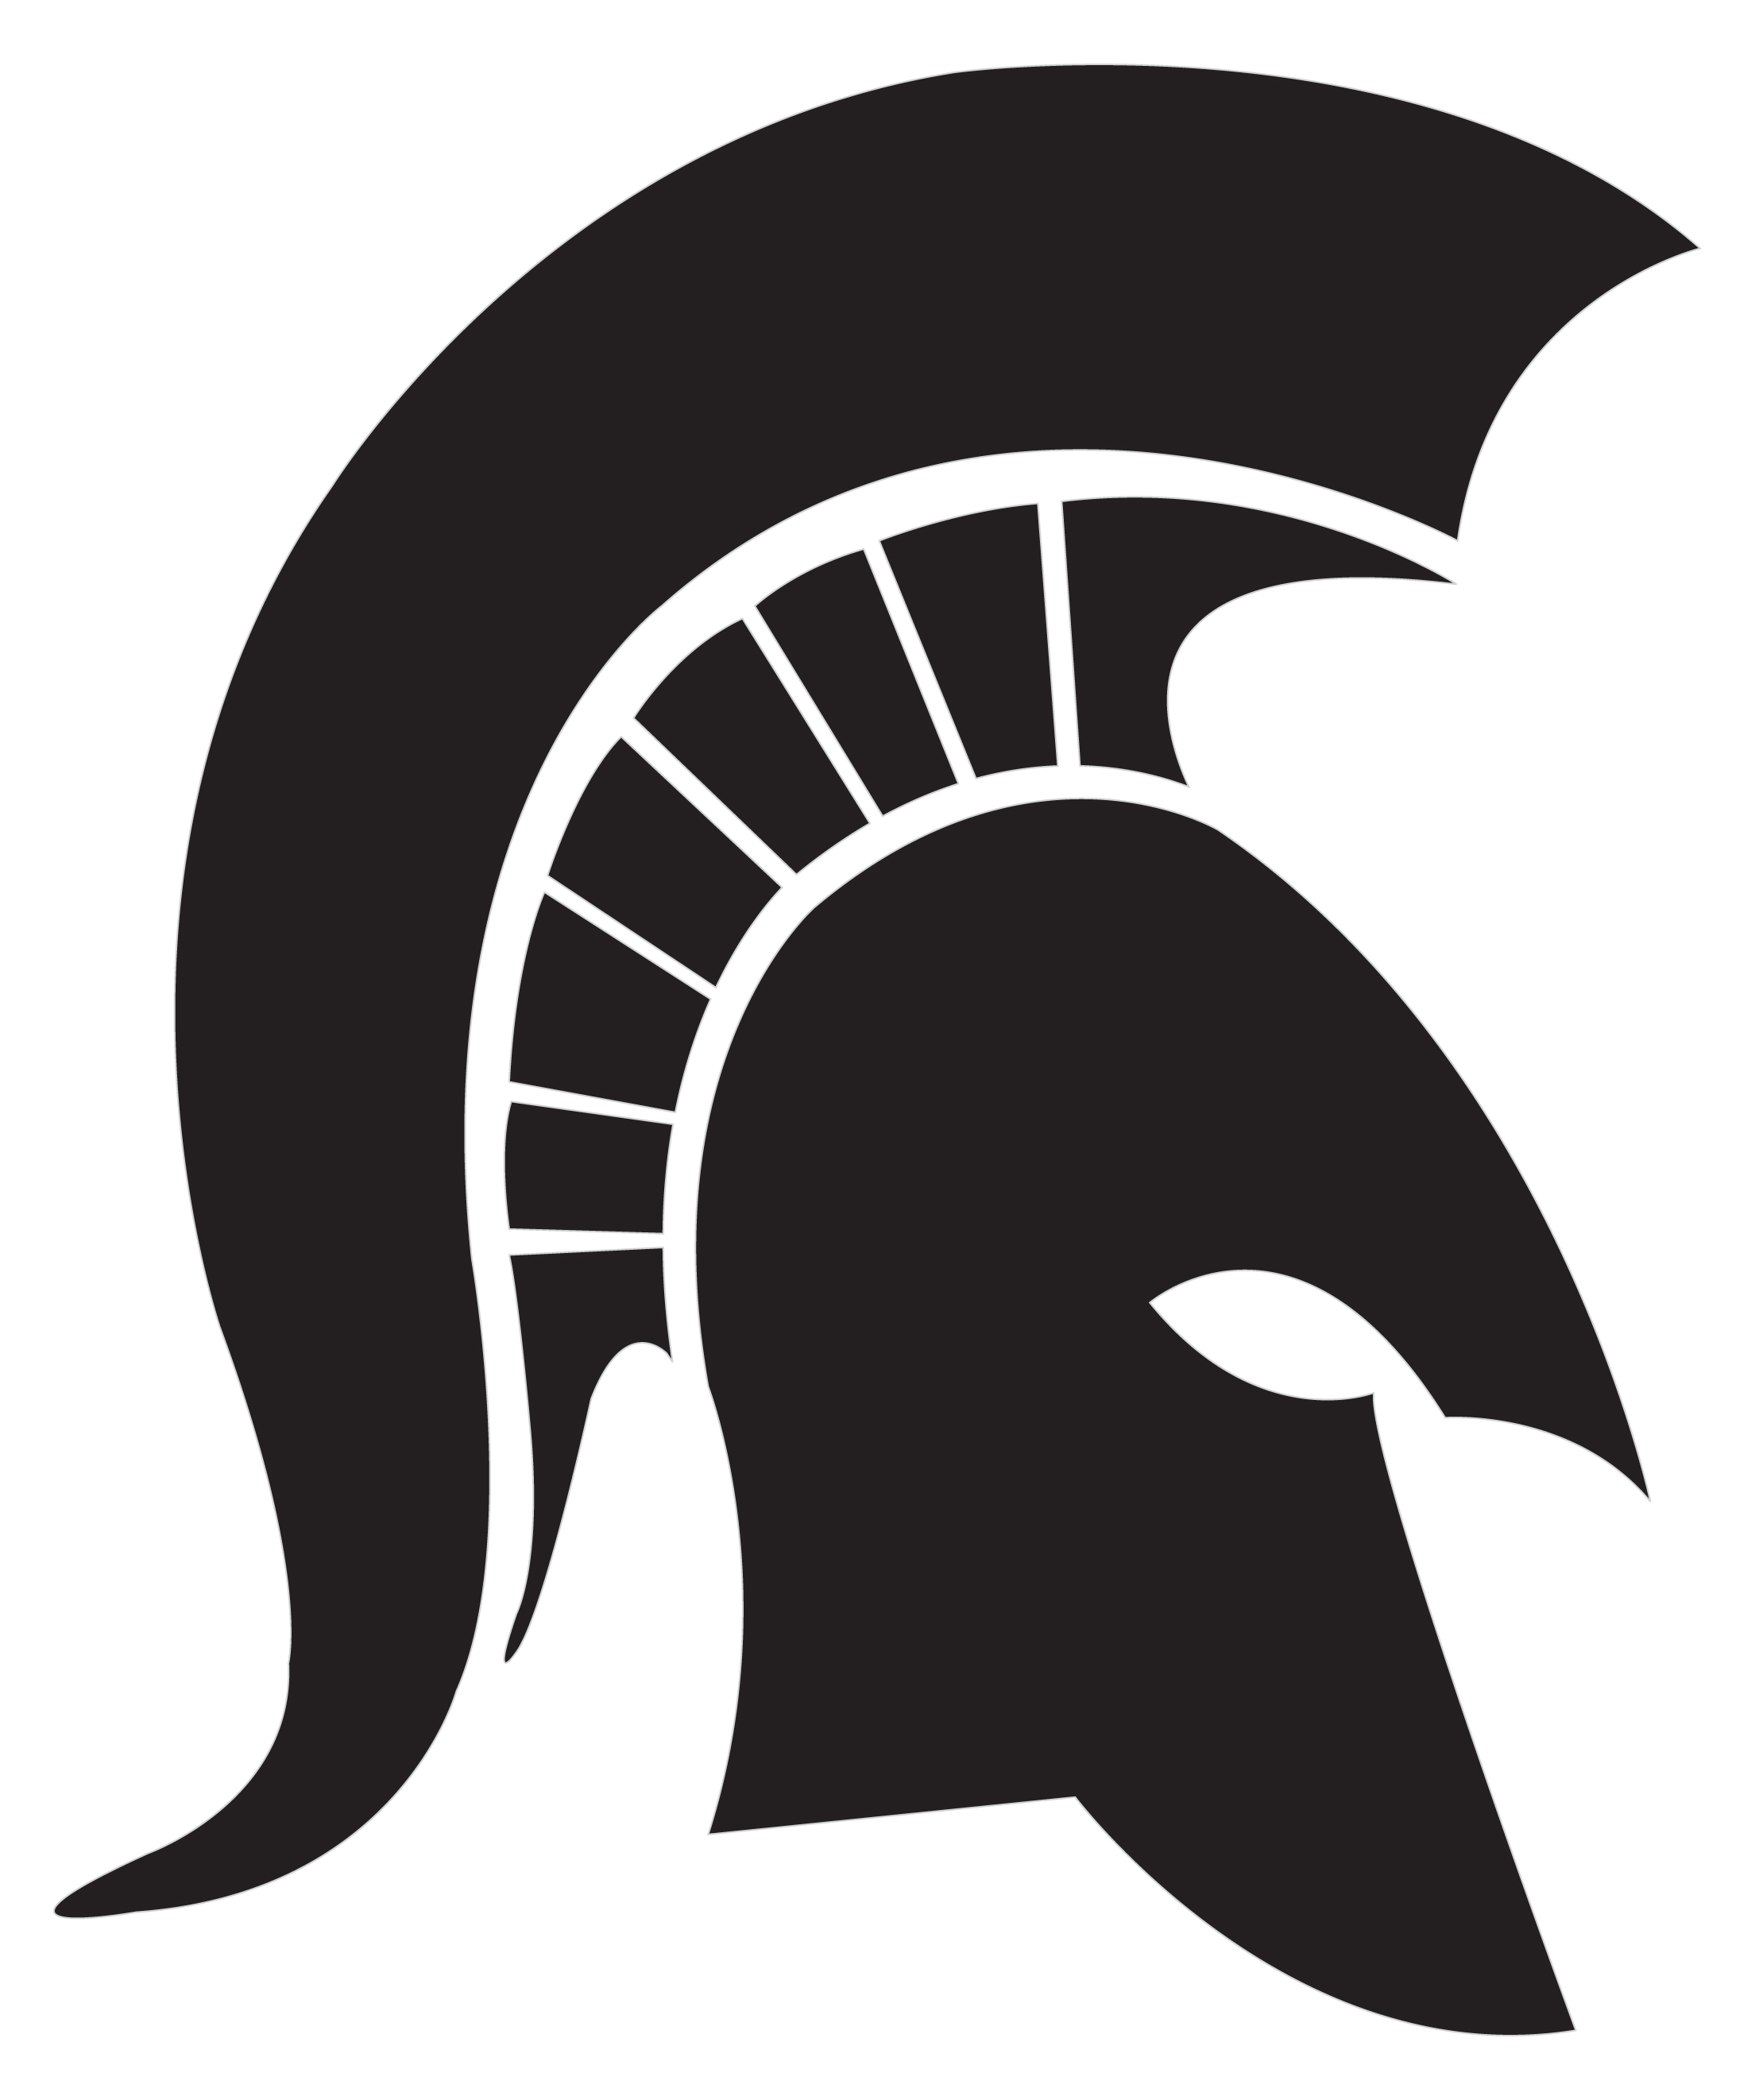 17 Spartan Helmet Free Cliparts That You Can Download To You Computer